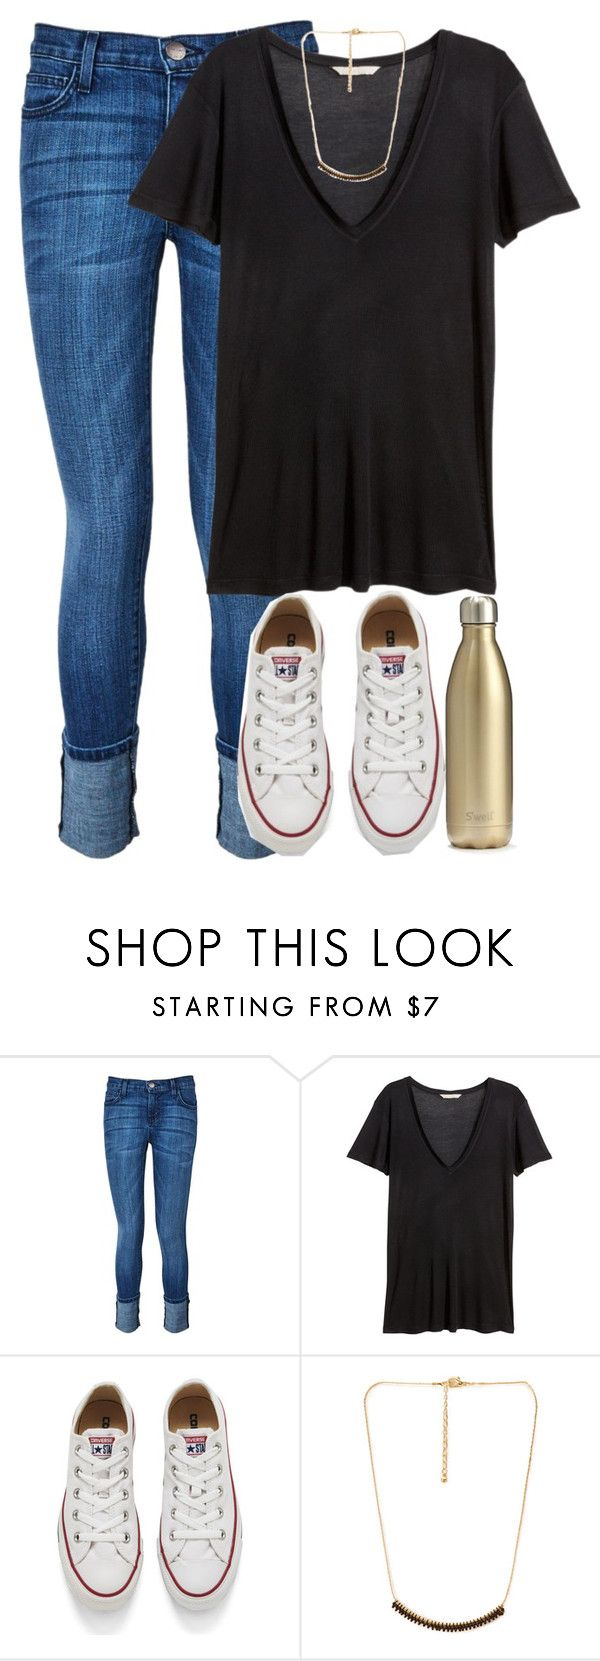 """""""Something more weather appropriate """" by red-velvet-n-pearls ❤ liked on Polyvore featuring Current/Elliott, H&M, Converse, Forever 21, S'well, women's clothing, women's fashion, women, female and woman"""